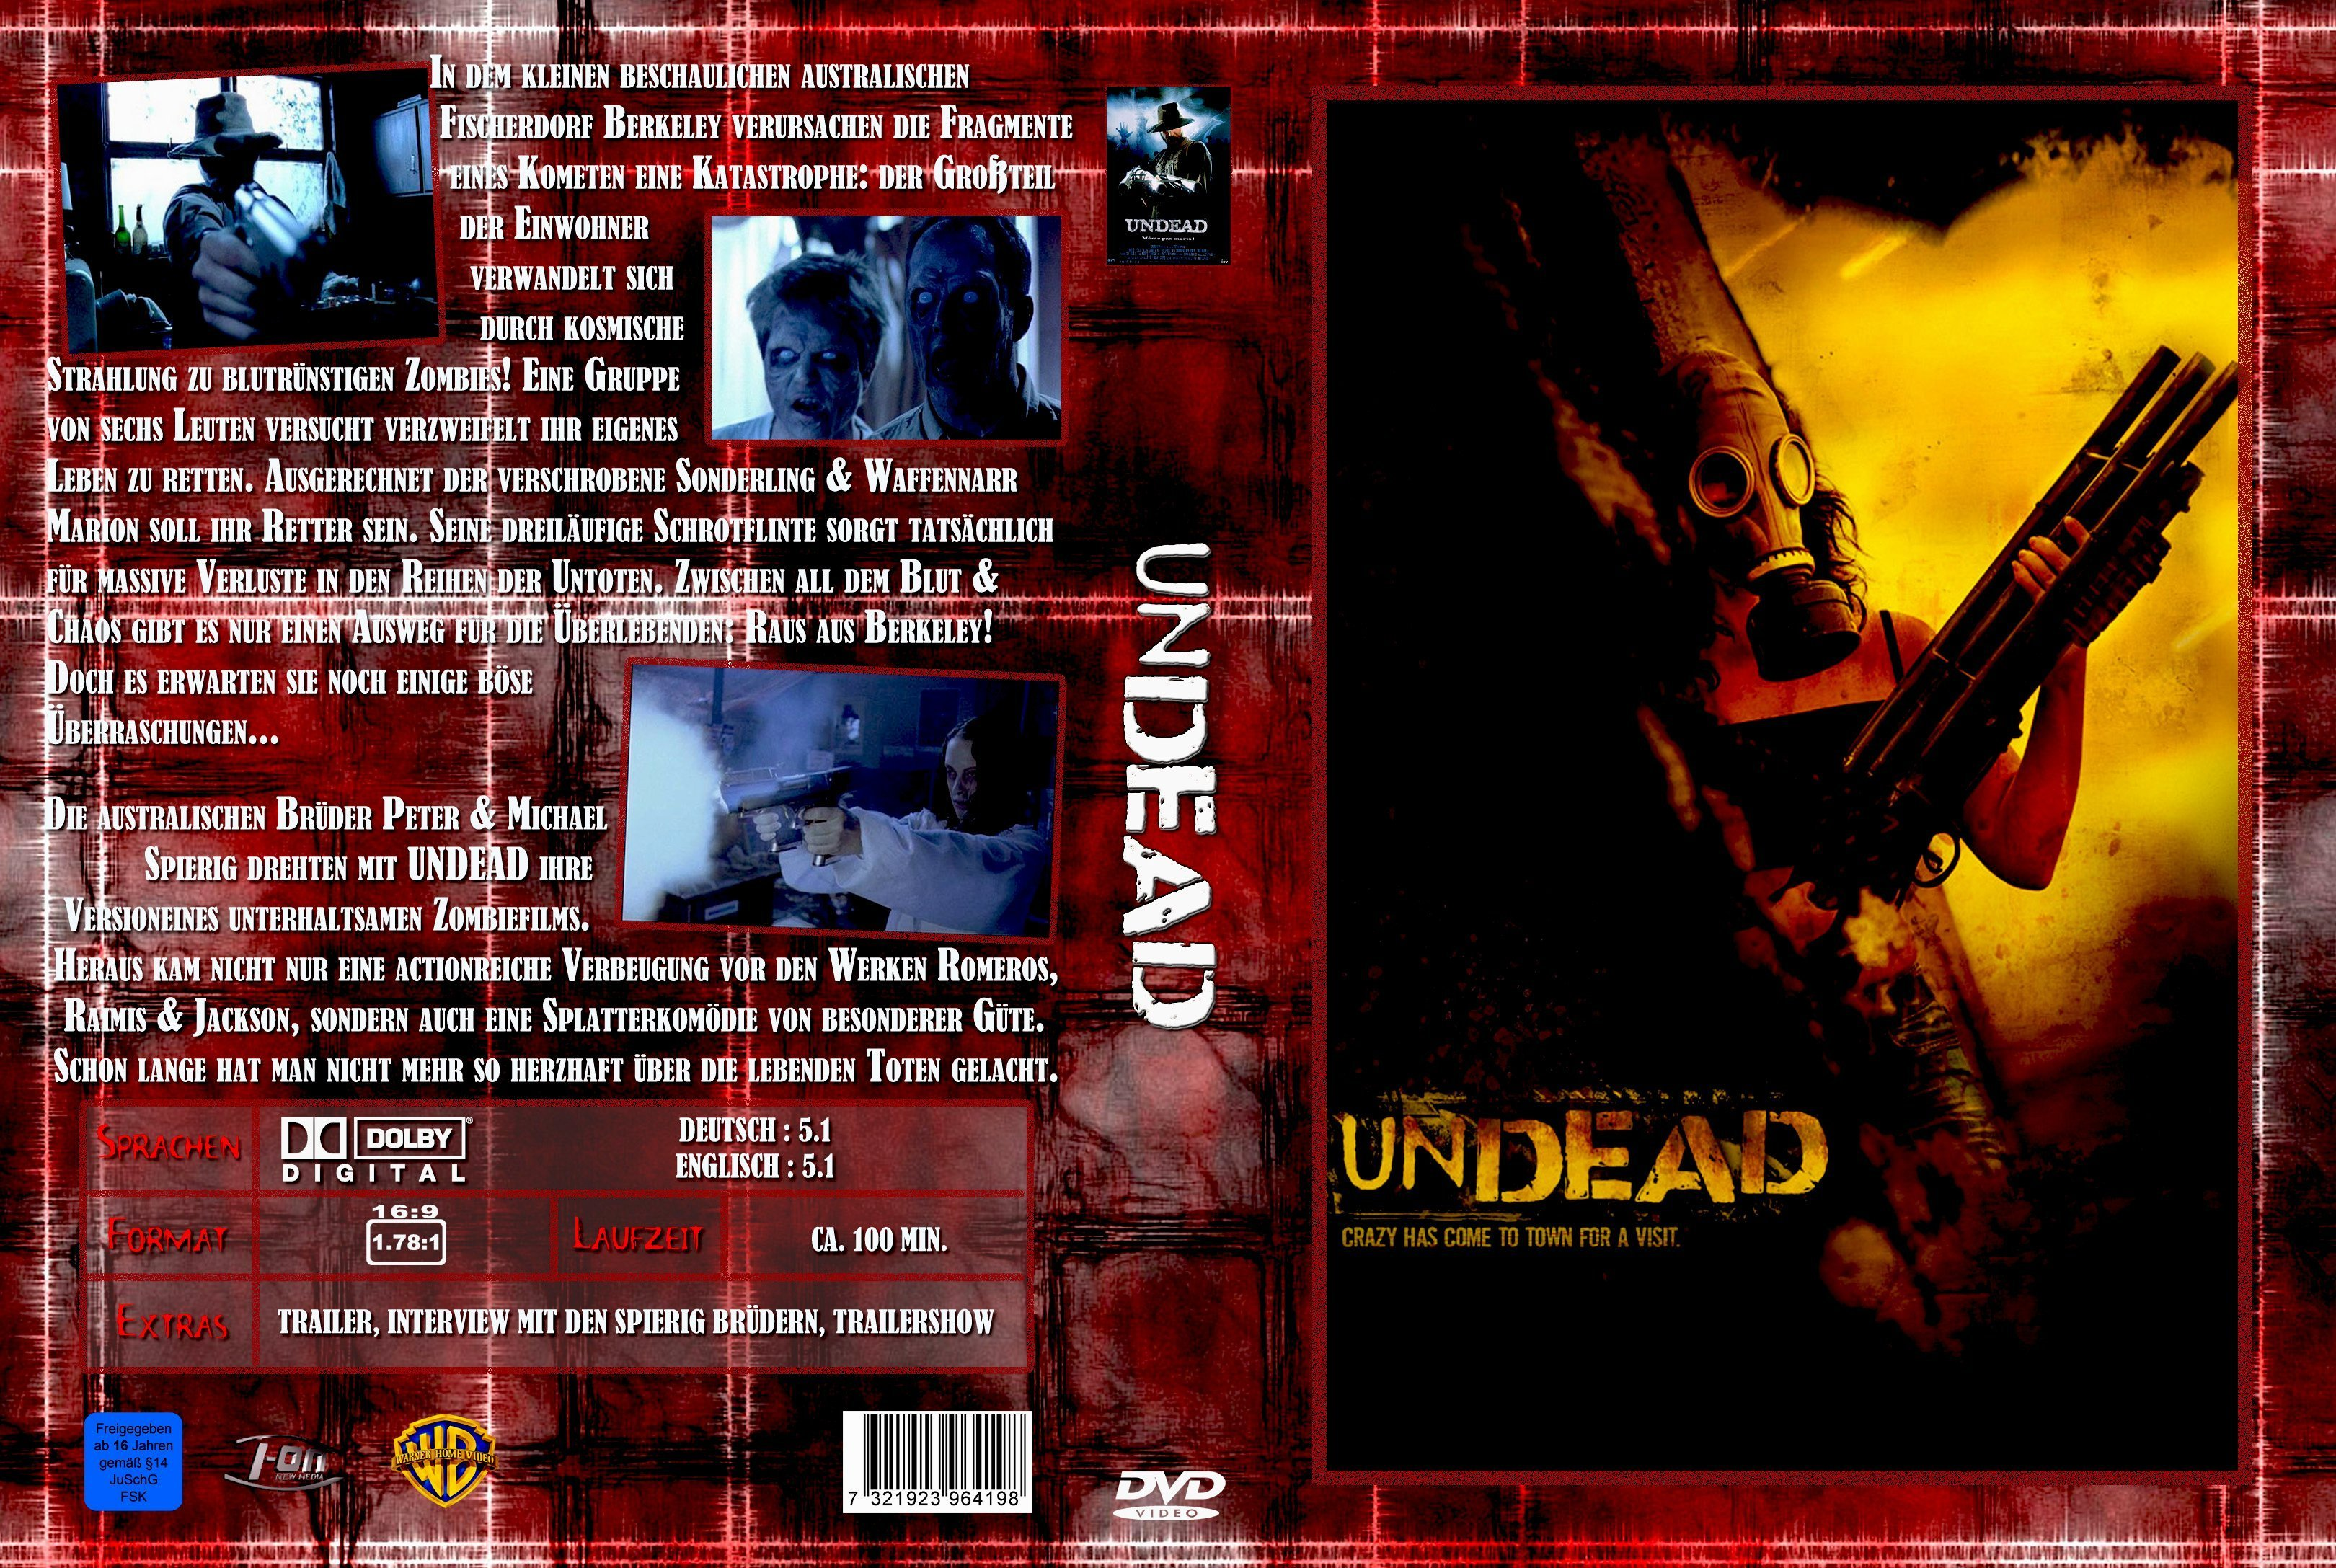 The undead movie 2008